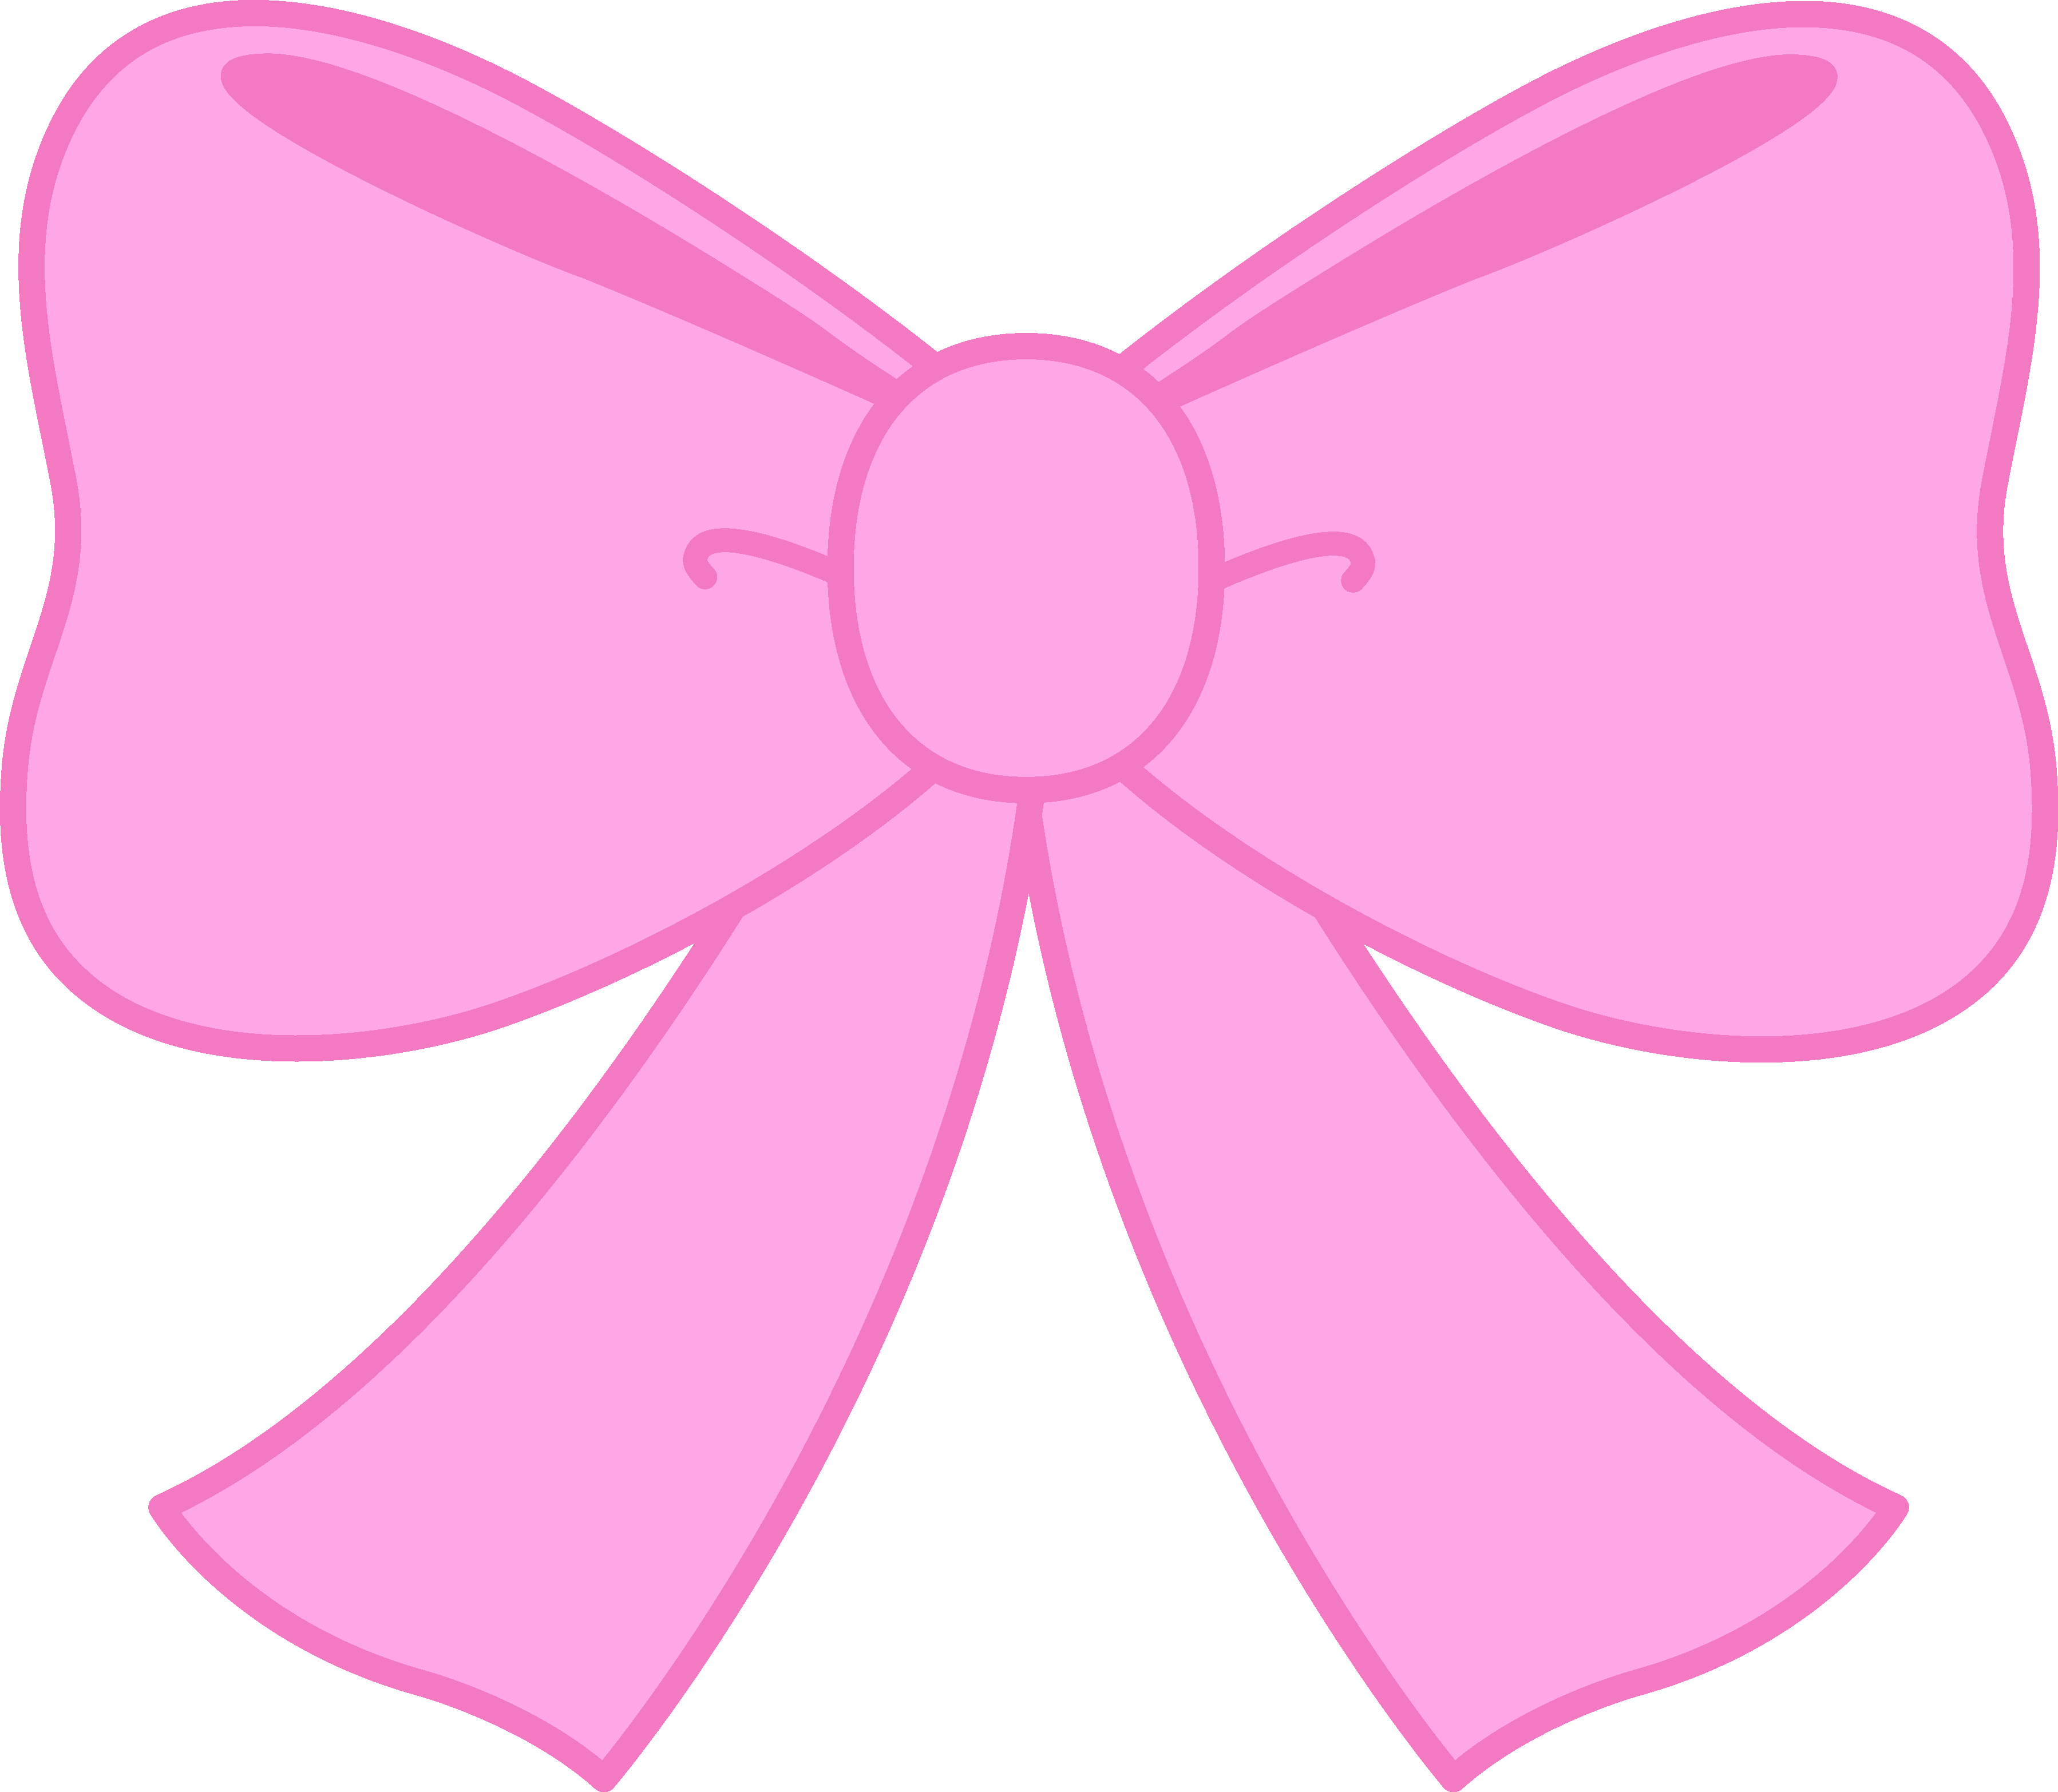 Wing clipart pink. Related image pinterest freezer